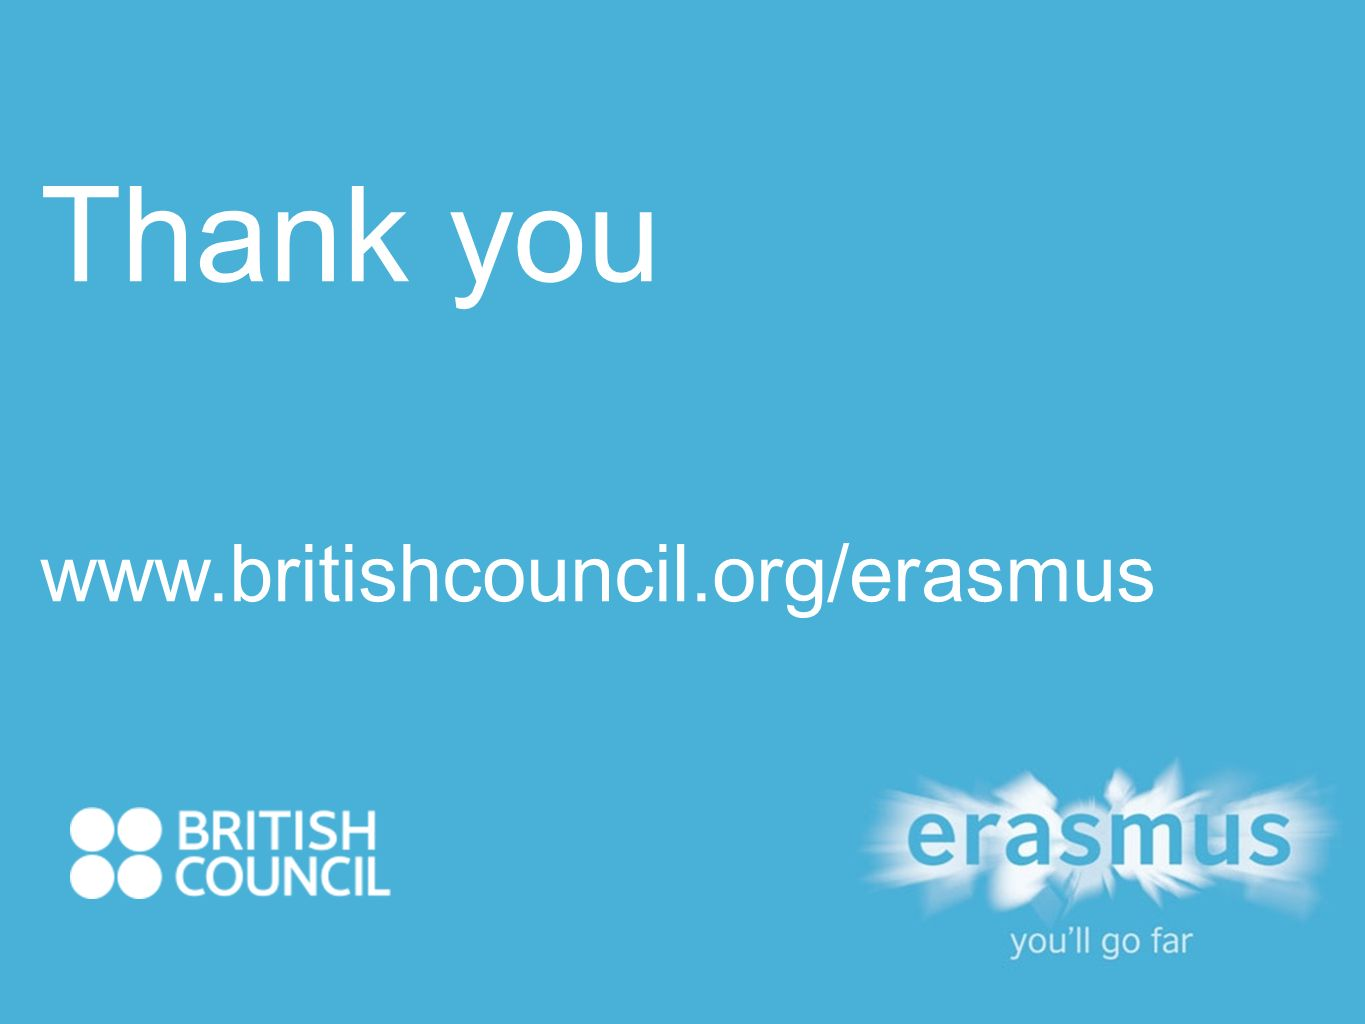 Thank you www.britishcouncil.org/erasmus